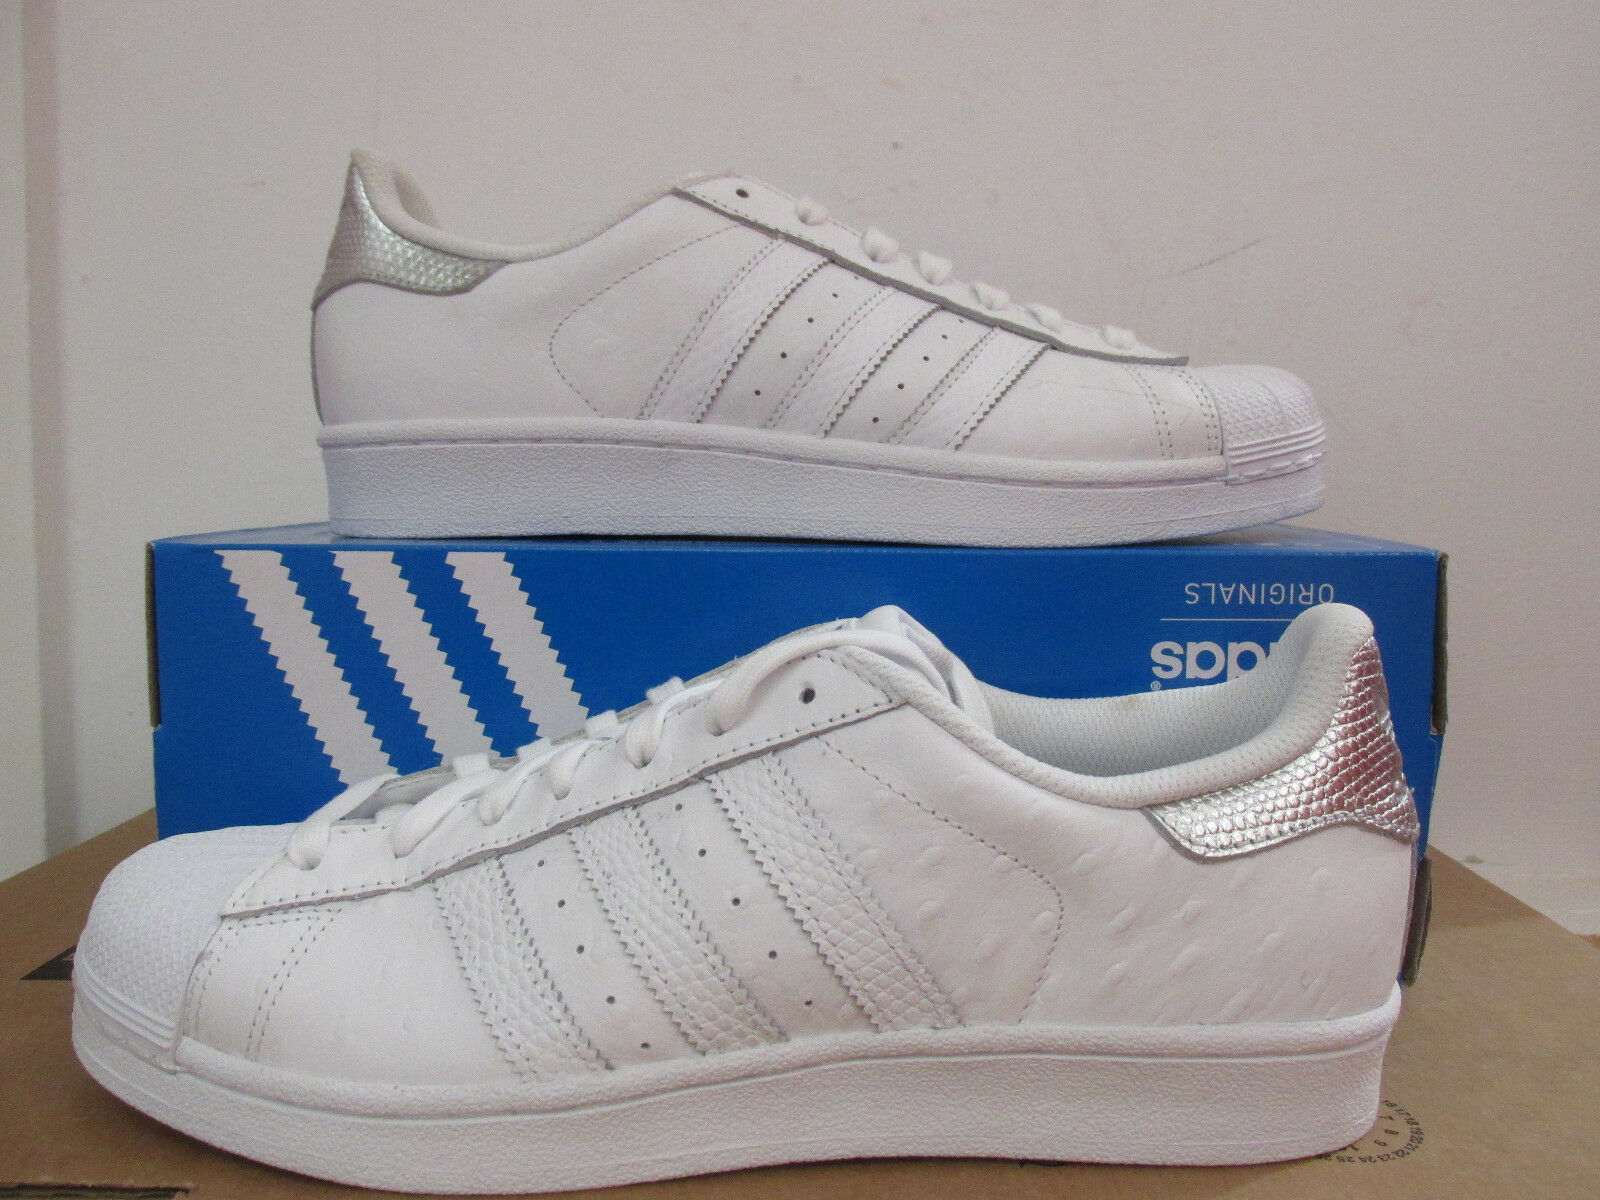 adidas originals superstar homme  trainers S80341 CLEARANCE Baskets  chaussures  CLEARANCE S80341 77b056